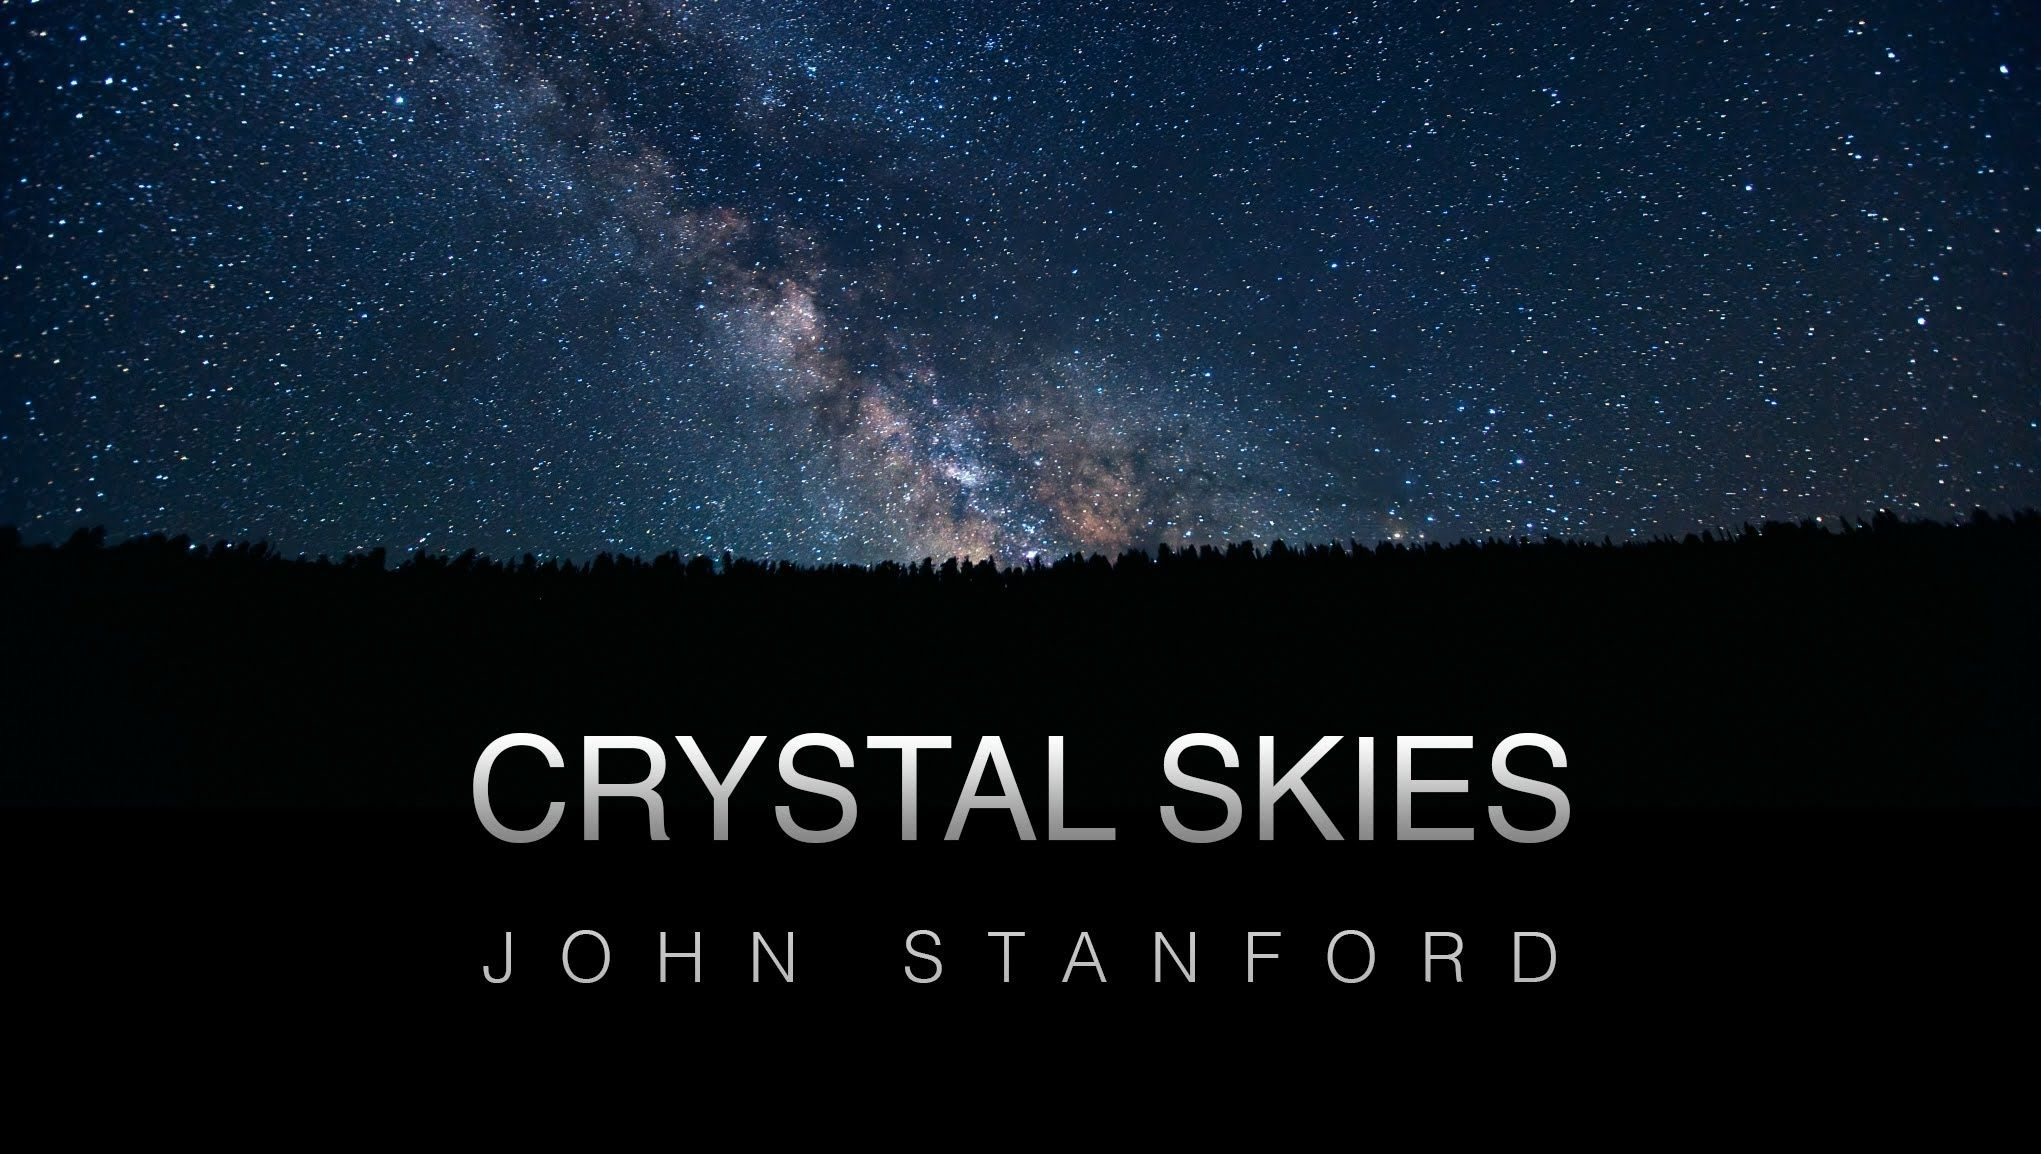 Nigel John Stanford: Crystal Skies 4K